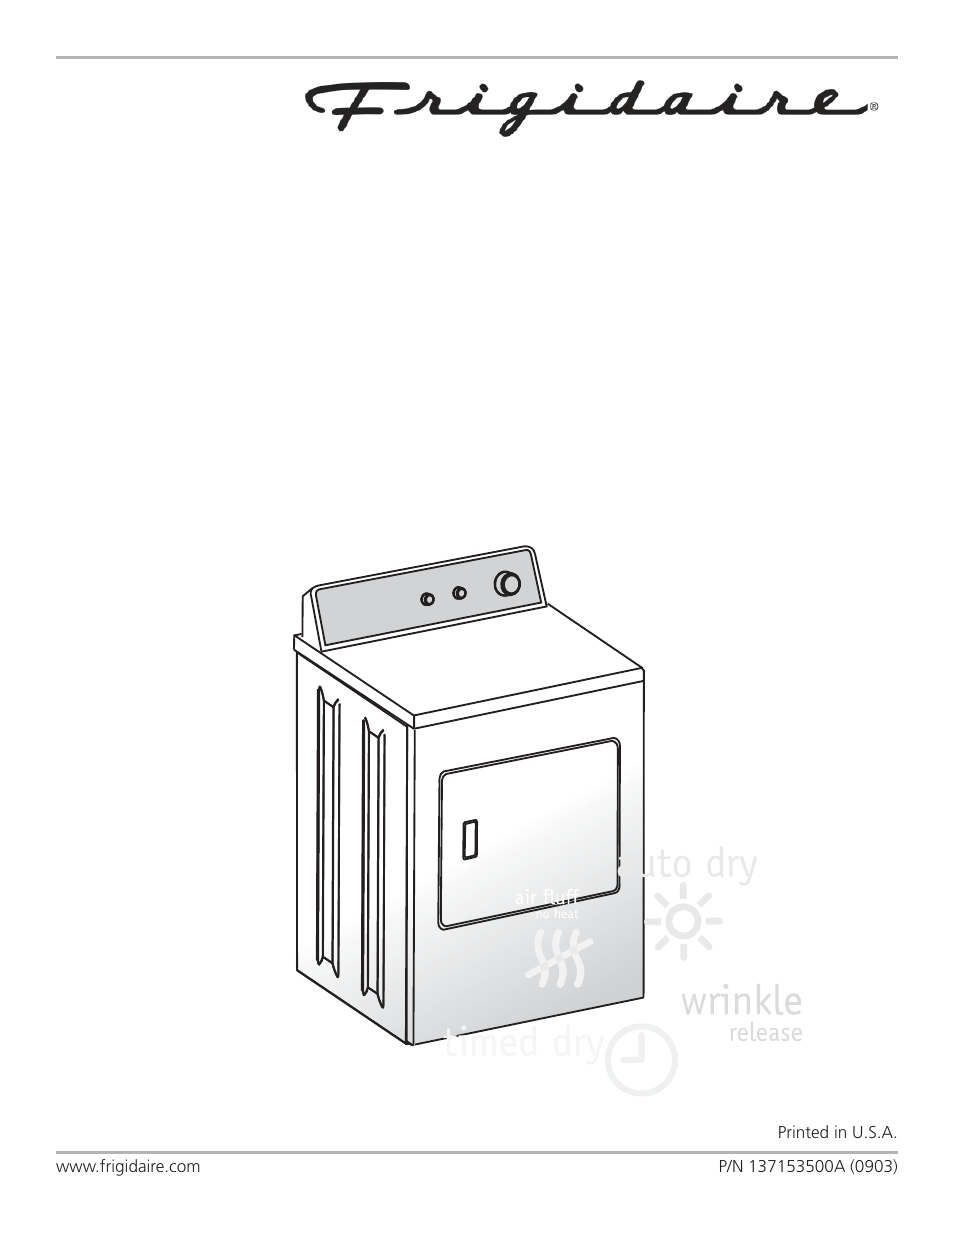 frigidaire 137153500a user manual 10 pages rh manualsdir com Frigidaire Dryer Diagrams Frigidaire Dryer Model Numbers